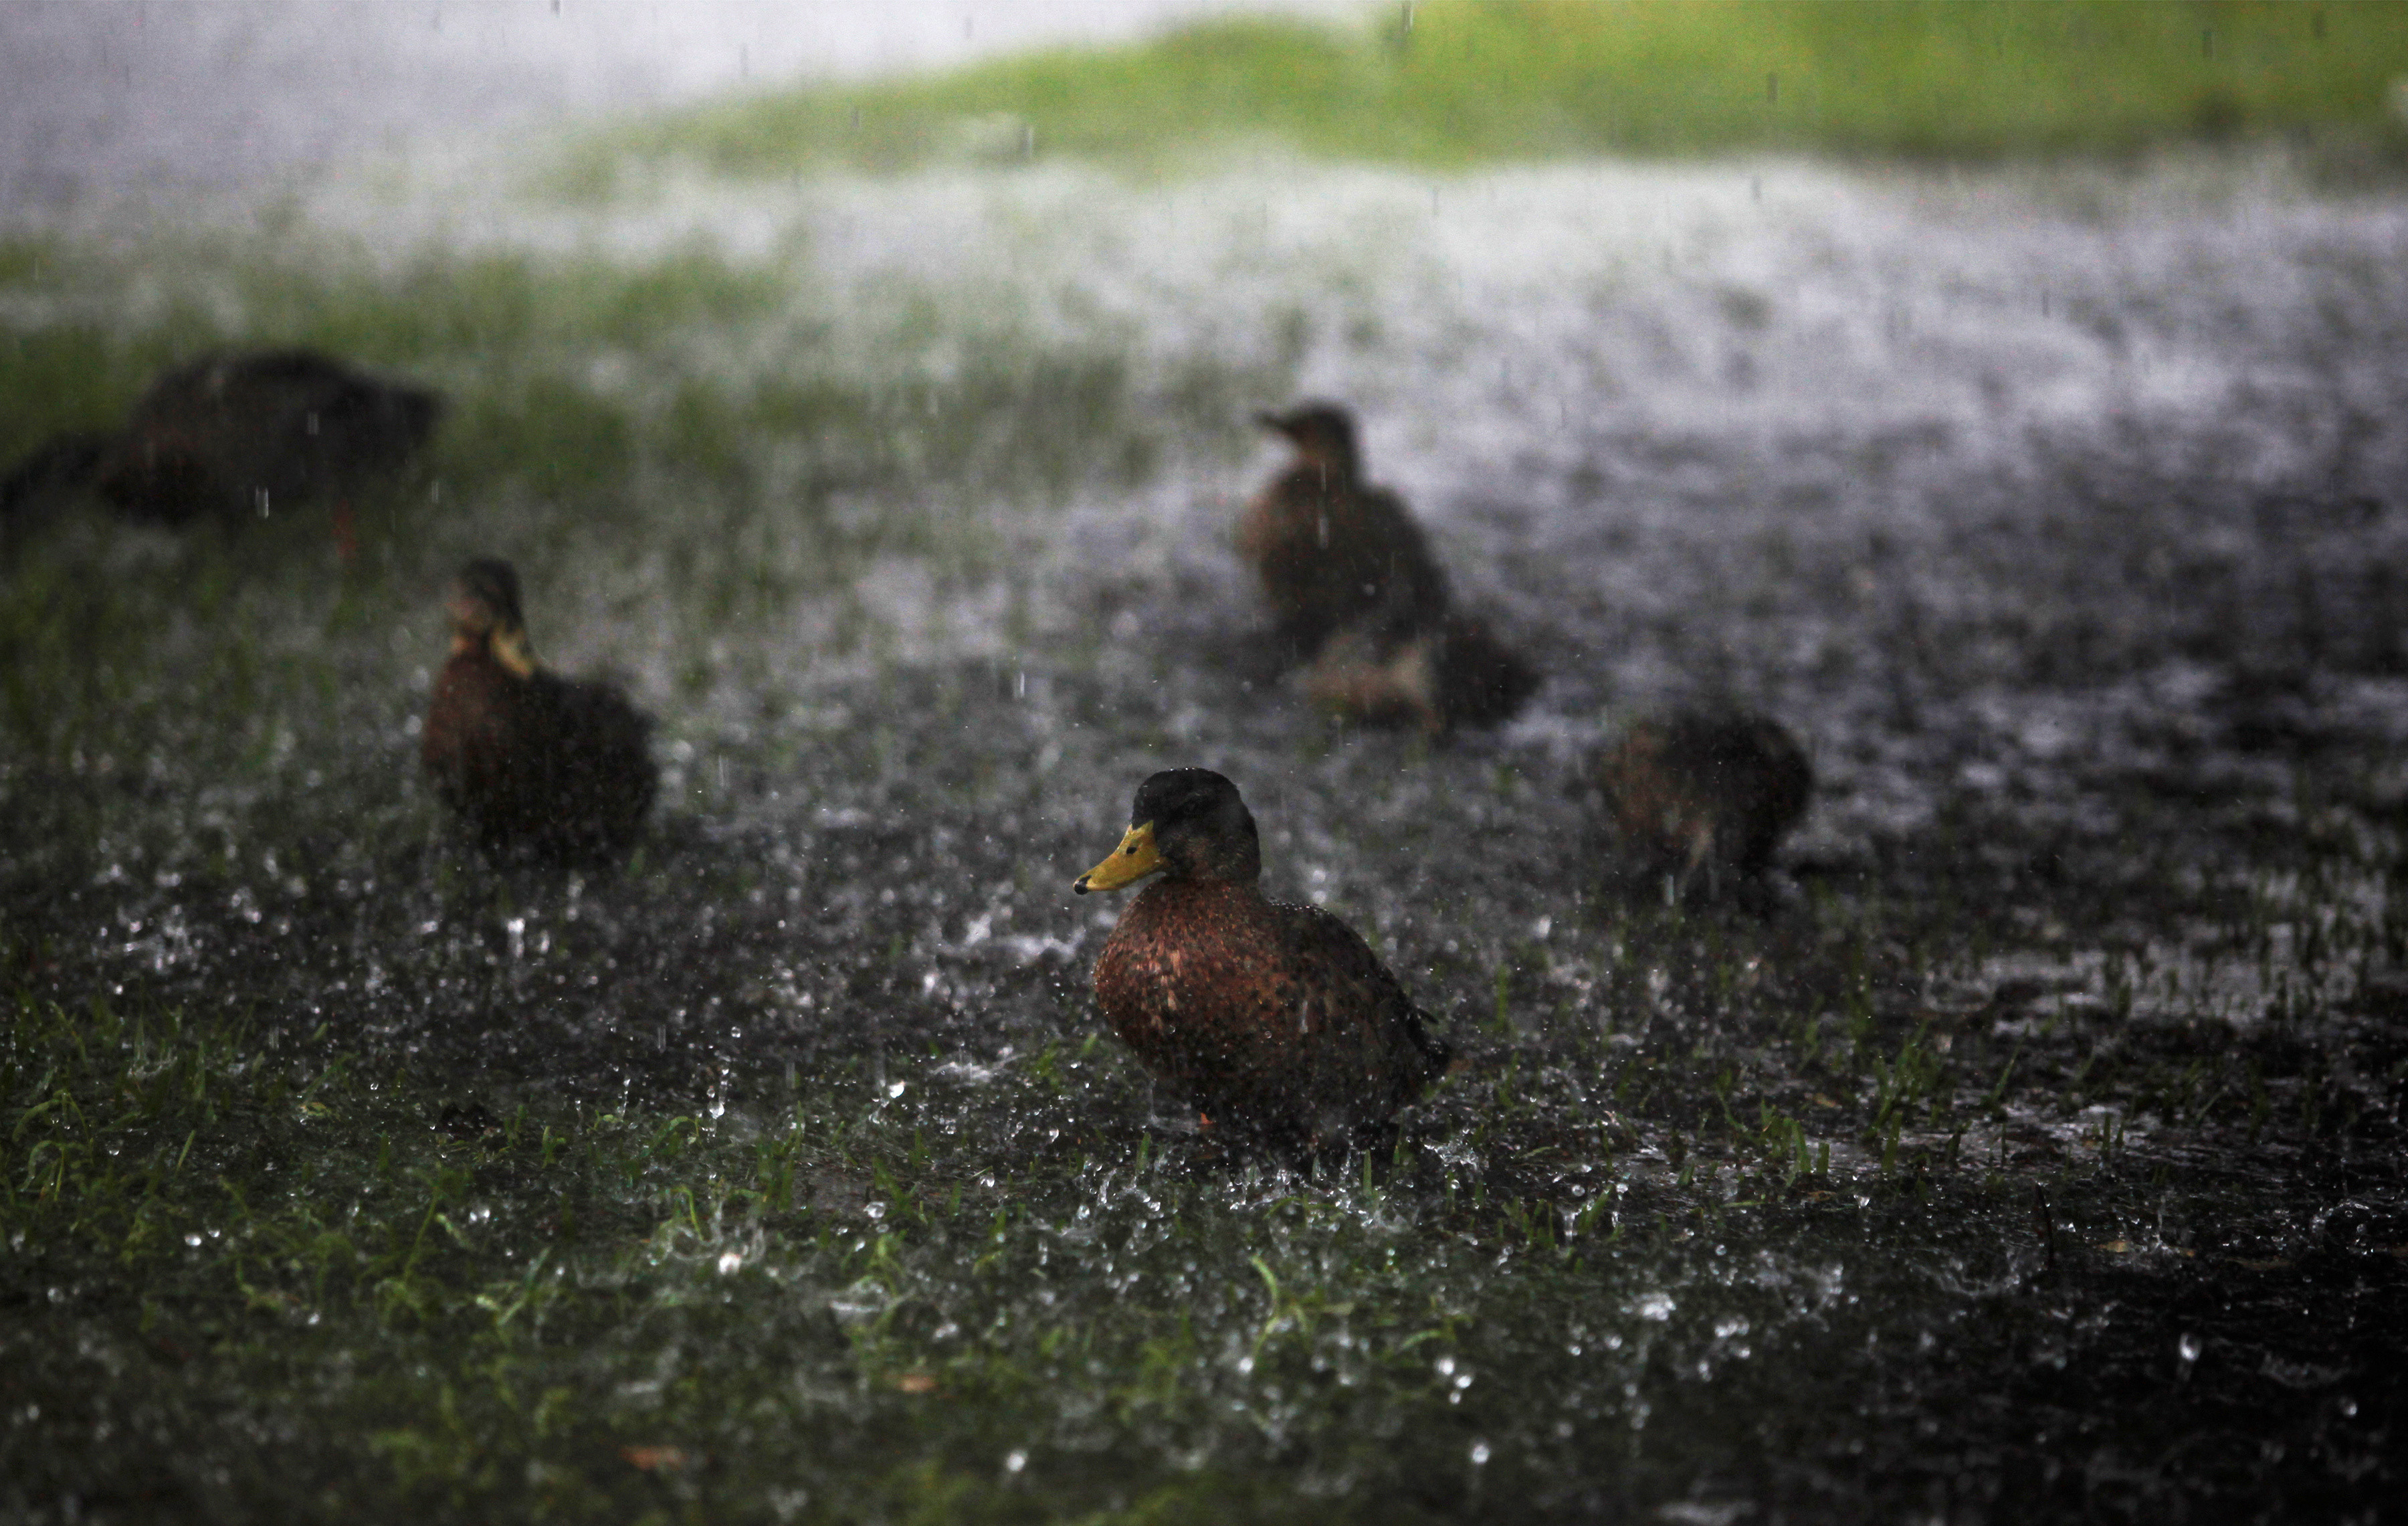 Ducks are splashed by the heavy rains of a Tropical Storm. REUTERS/Randall Hill